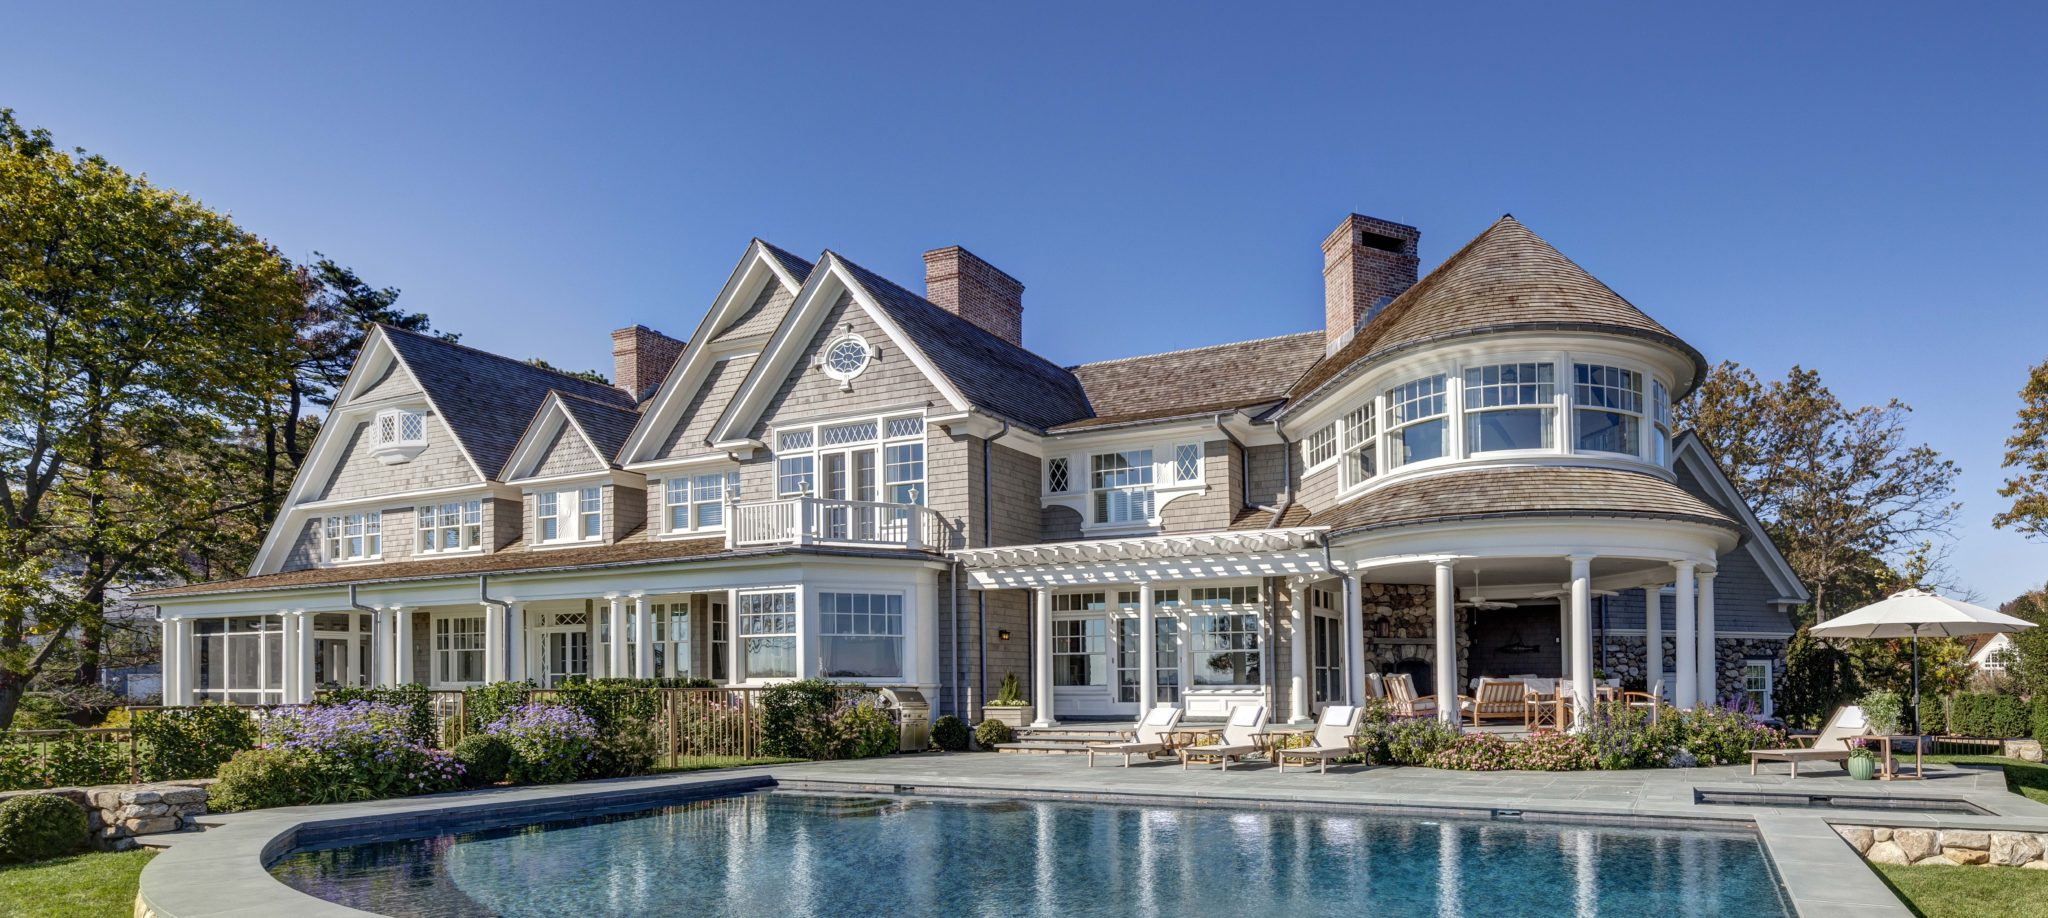 New England Shingle Style Residence by Charles Hilton Architects